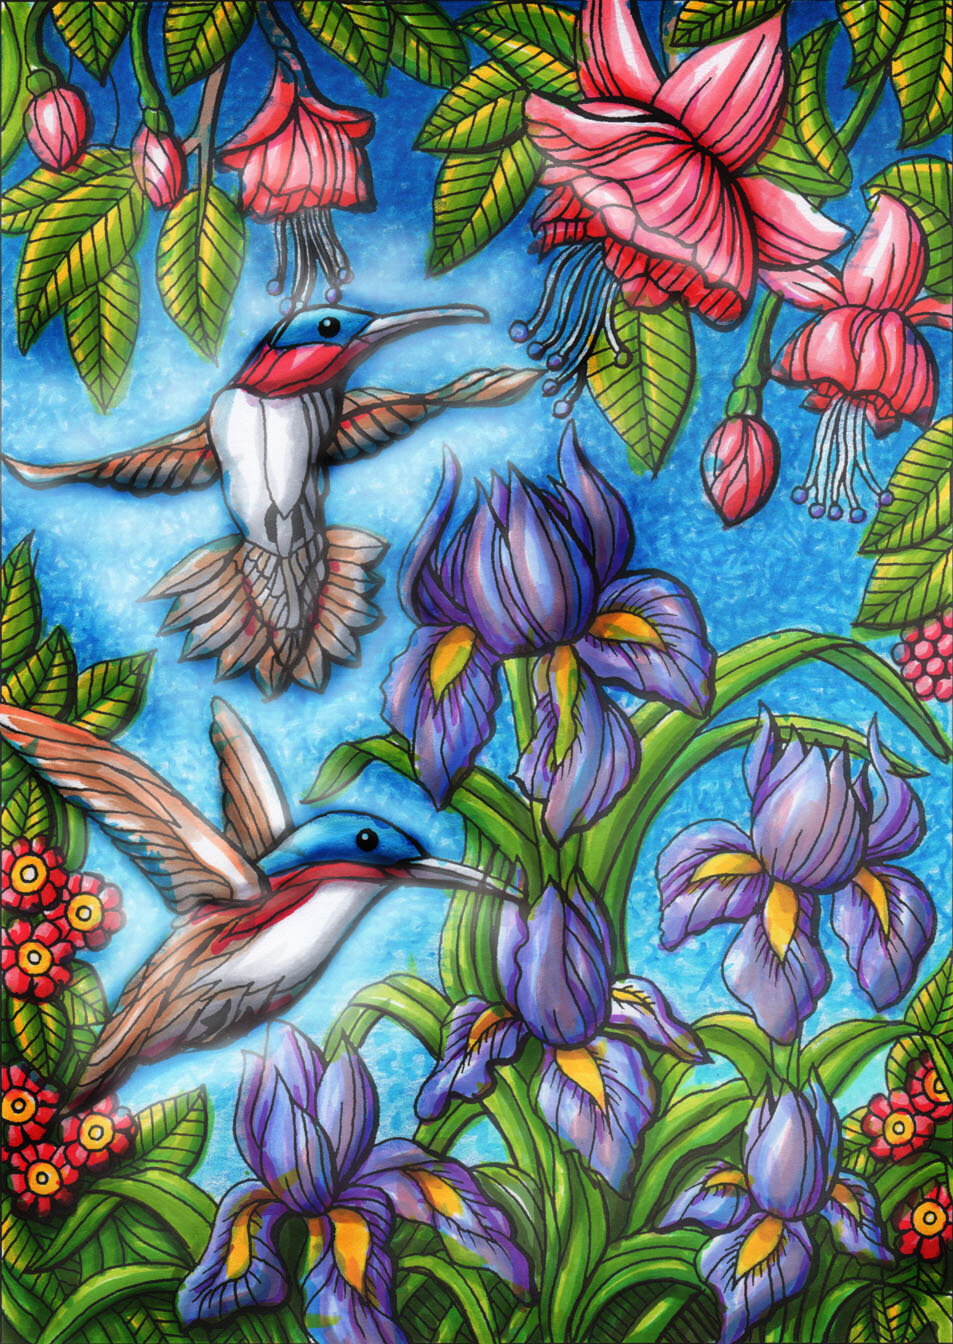 Hummingbirds illus 150dpi rev.jpg